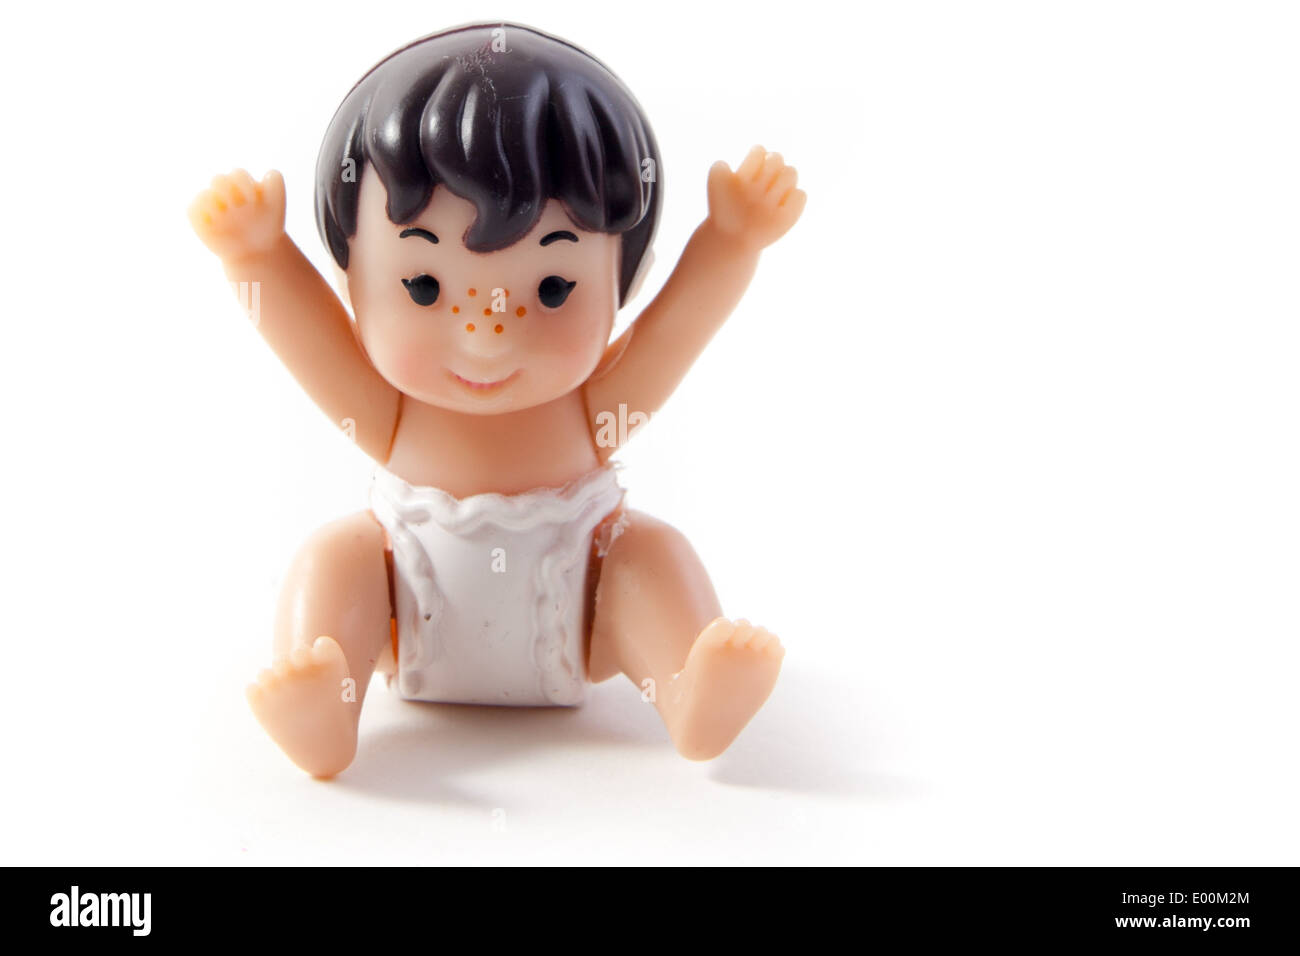 Toys on a white background. A plastic baby girl doll with nappy on holding her hands up. - Stock Image